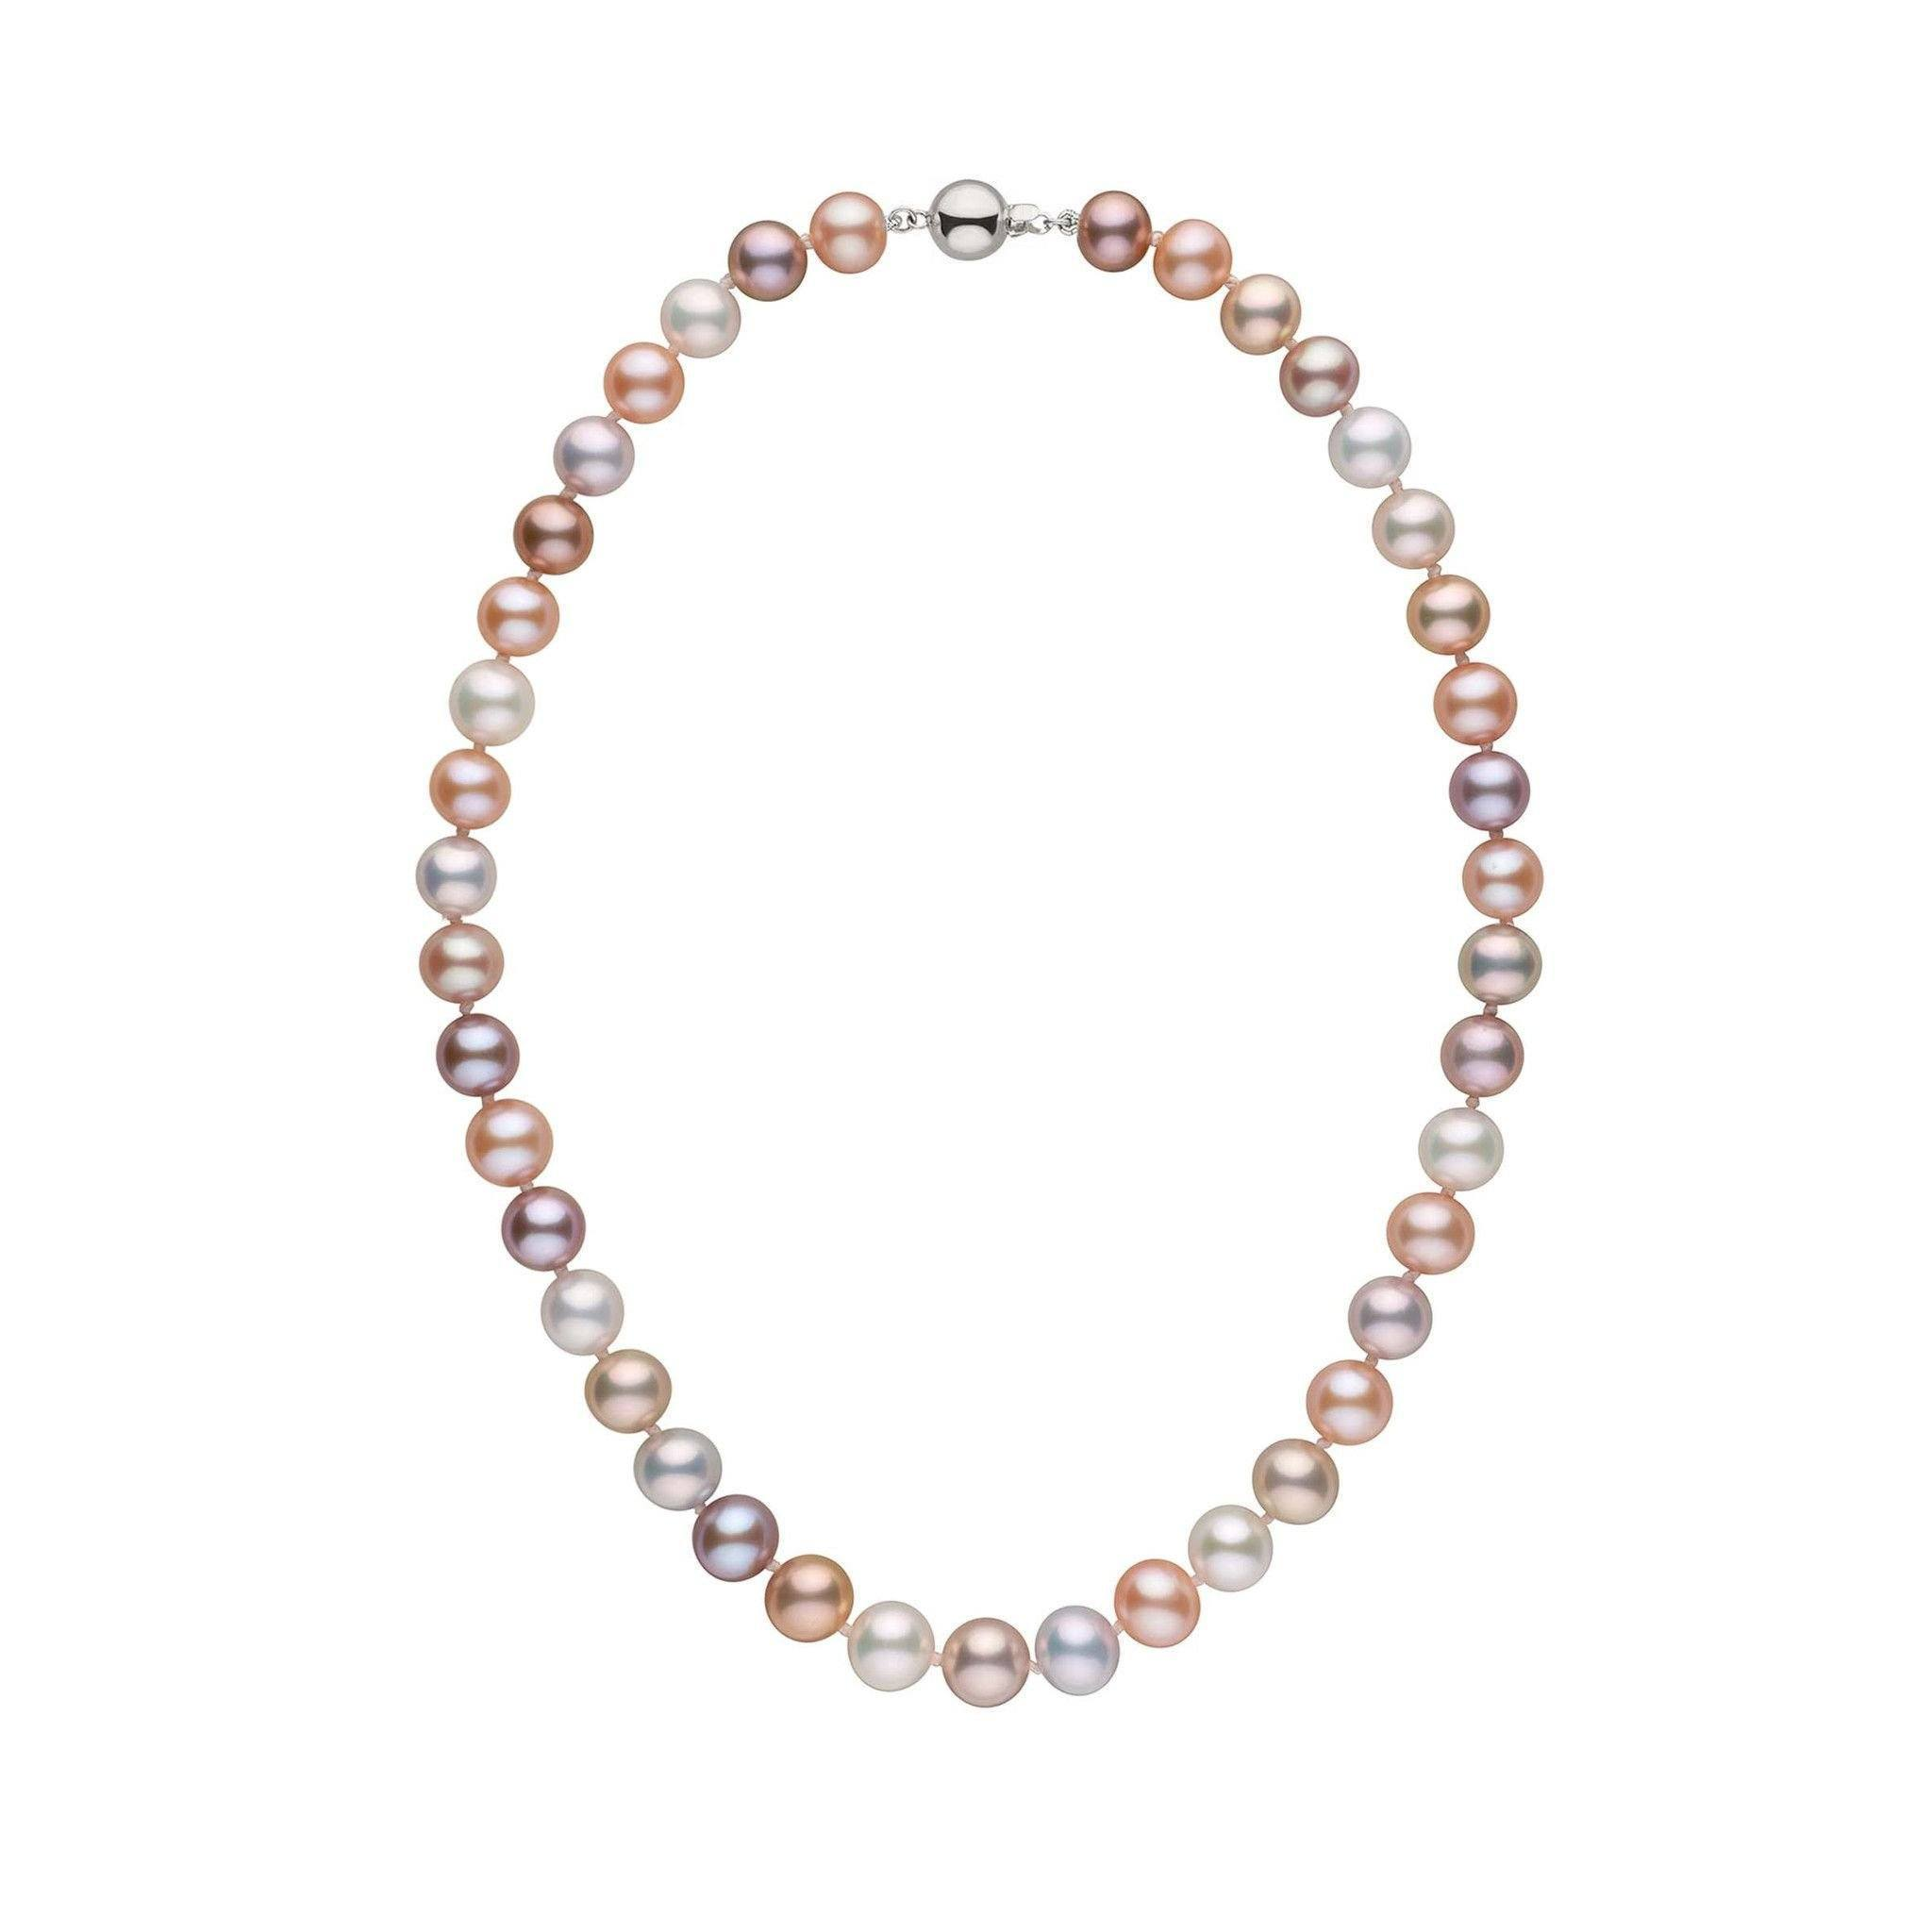 9.0-9.5 mm 16 Inch Multicolor Freshadama Freshwater Pearl Necklace